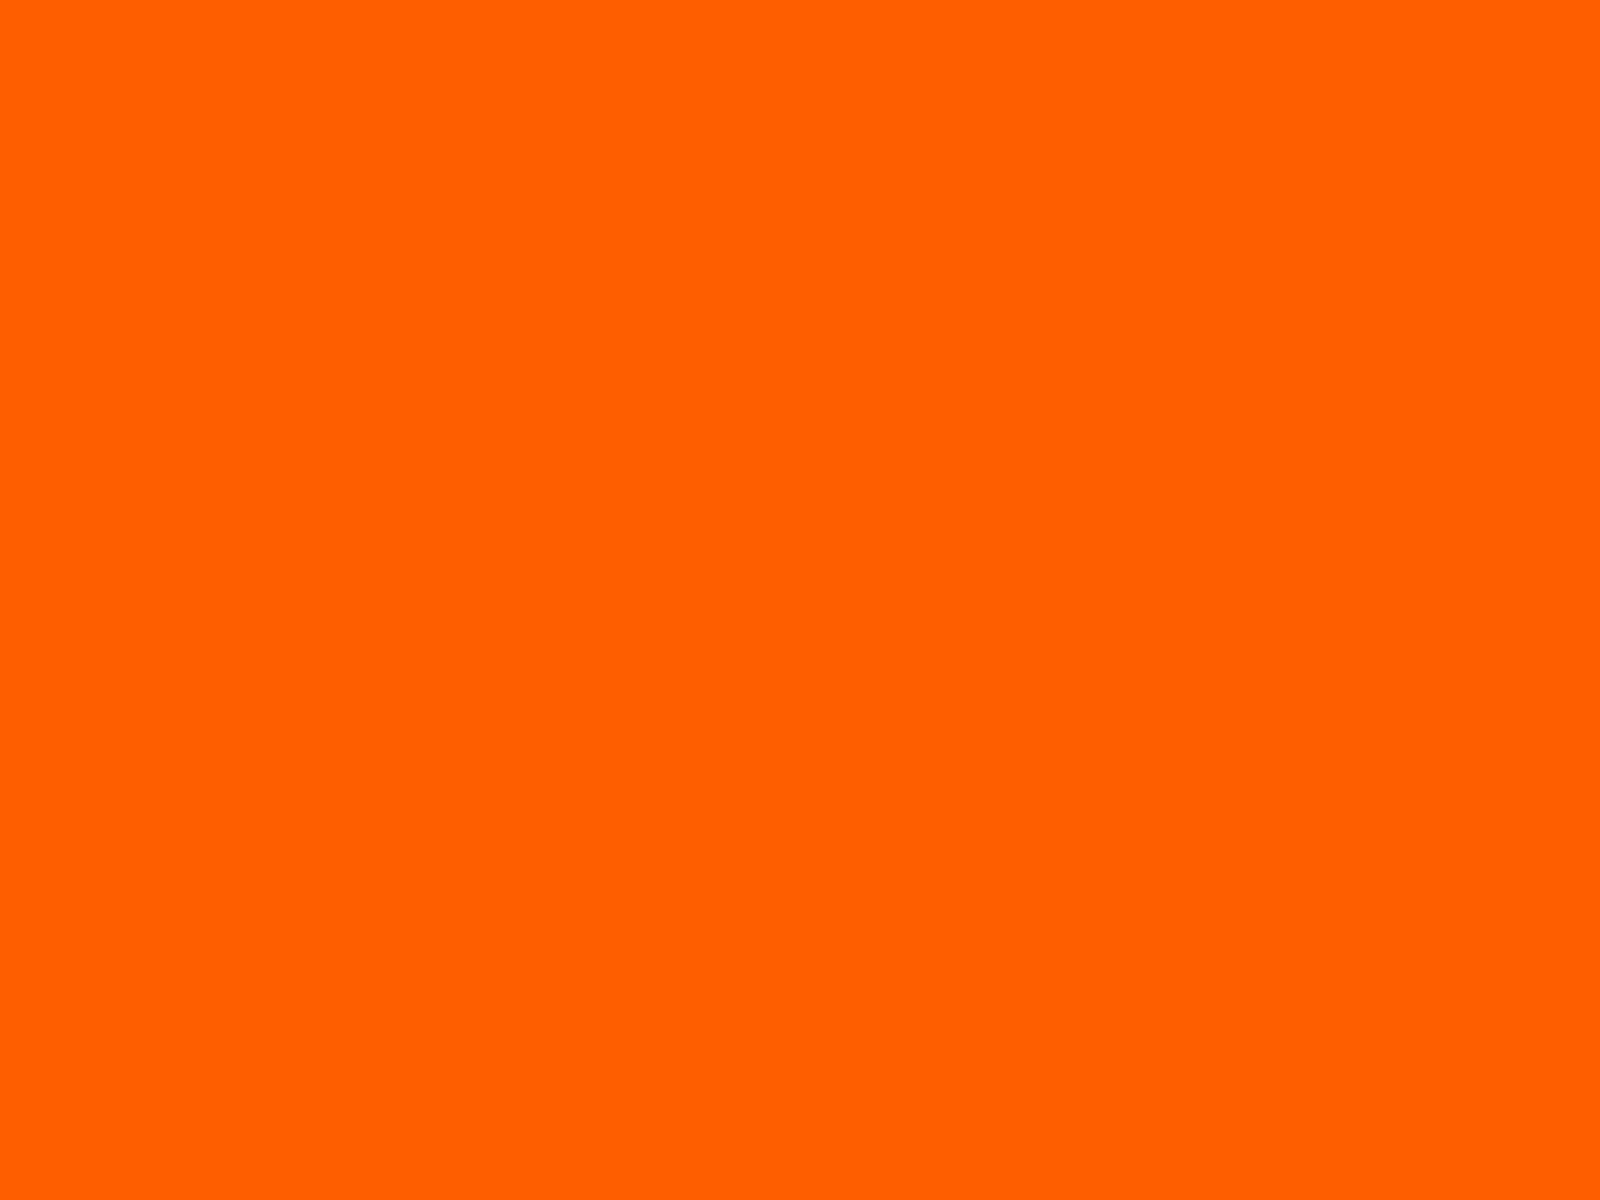 Orange Color Symbolism Wiki Fandom Powered By Wikia